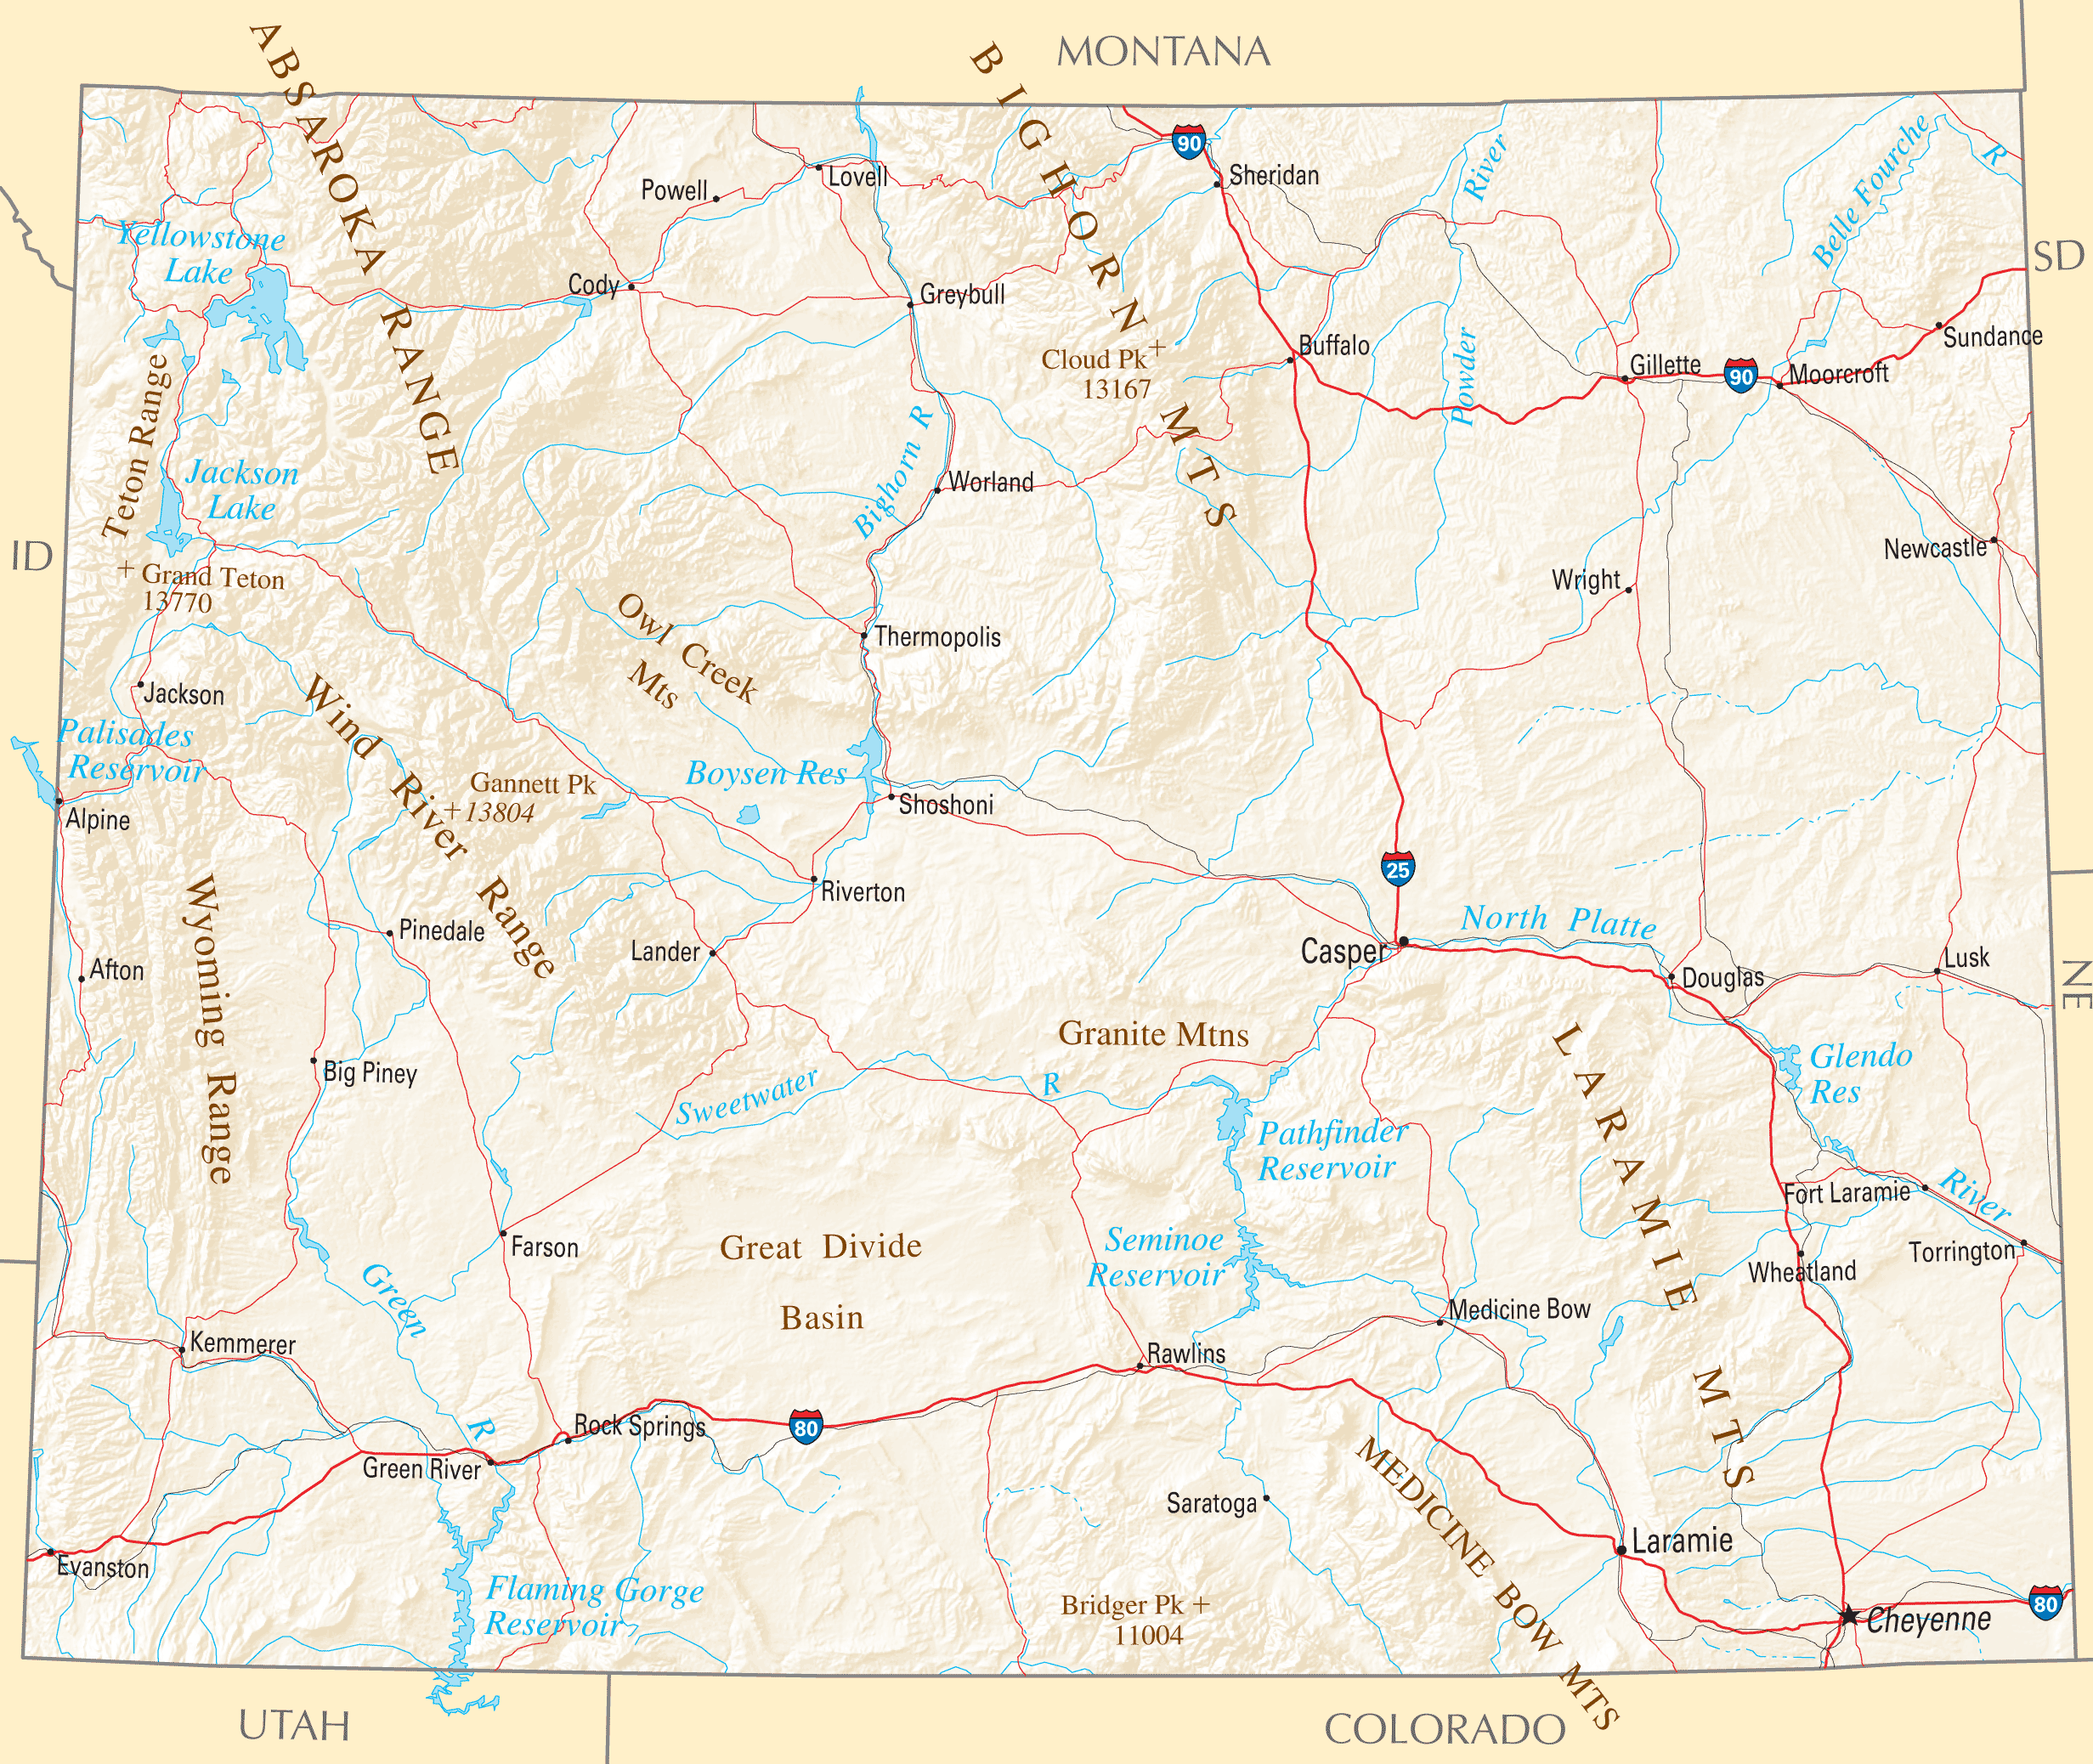 Wyoming Reference Map Mapsofnet - Wyoming map